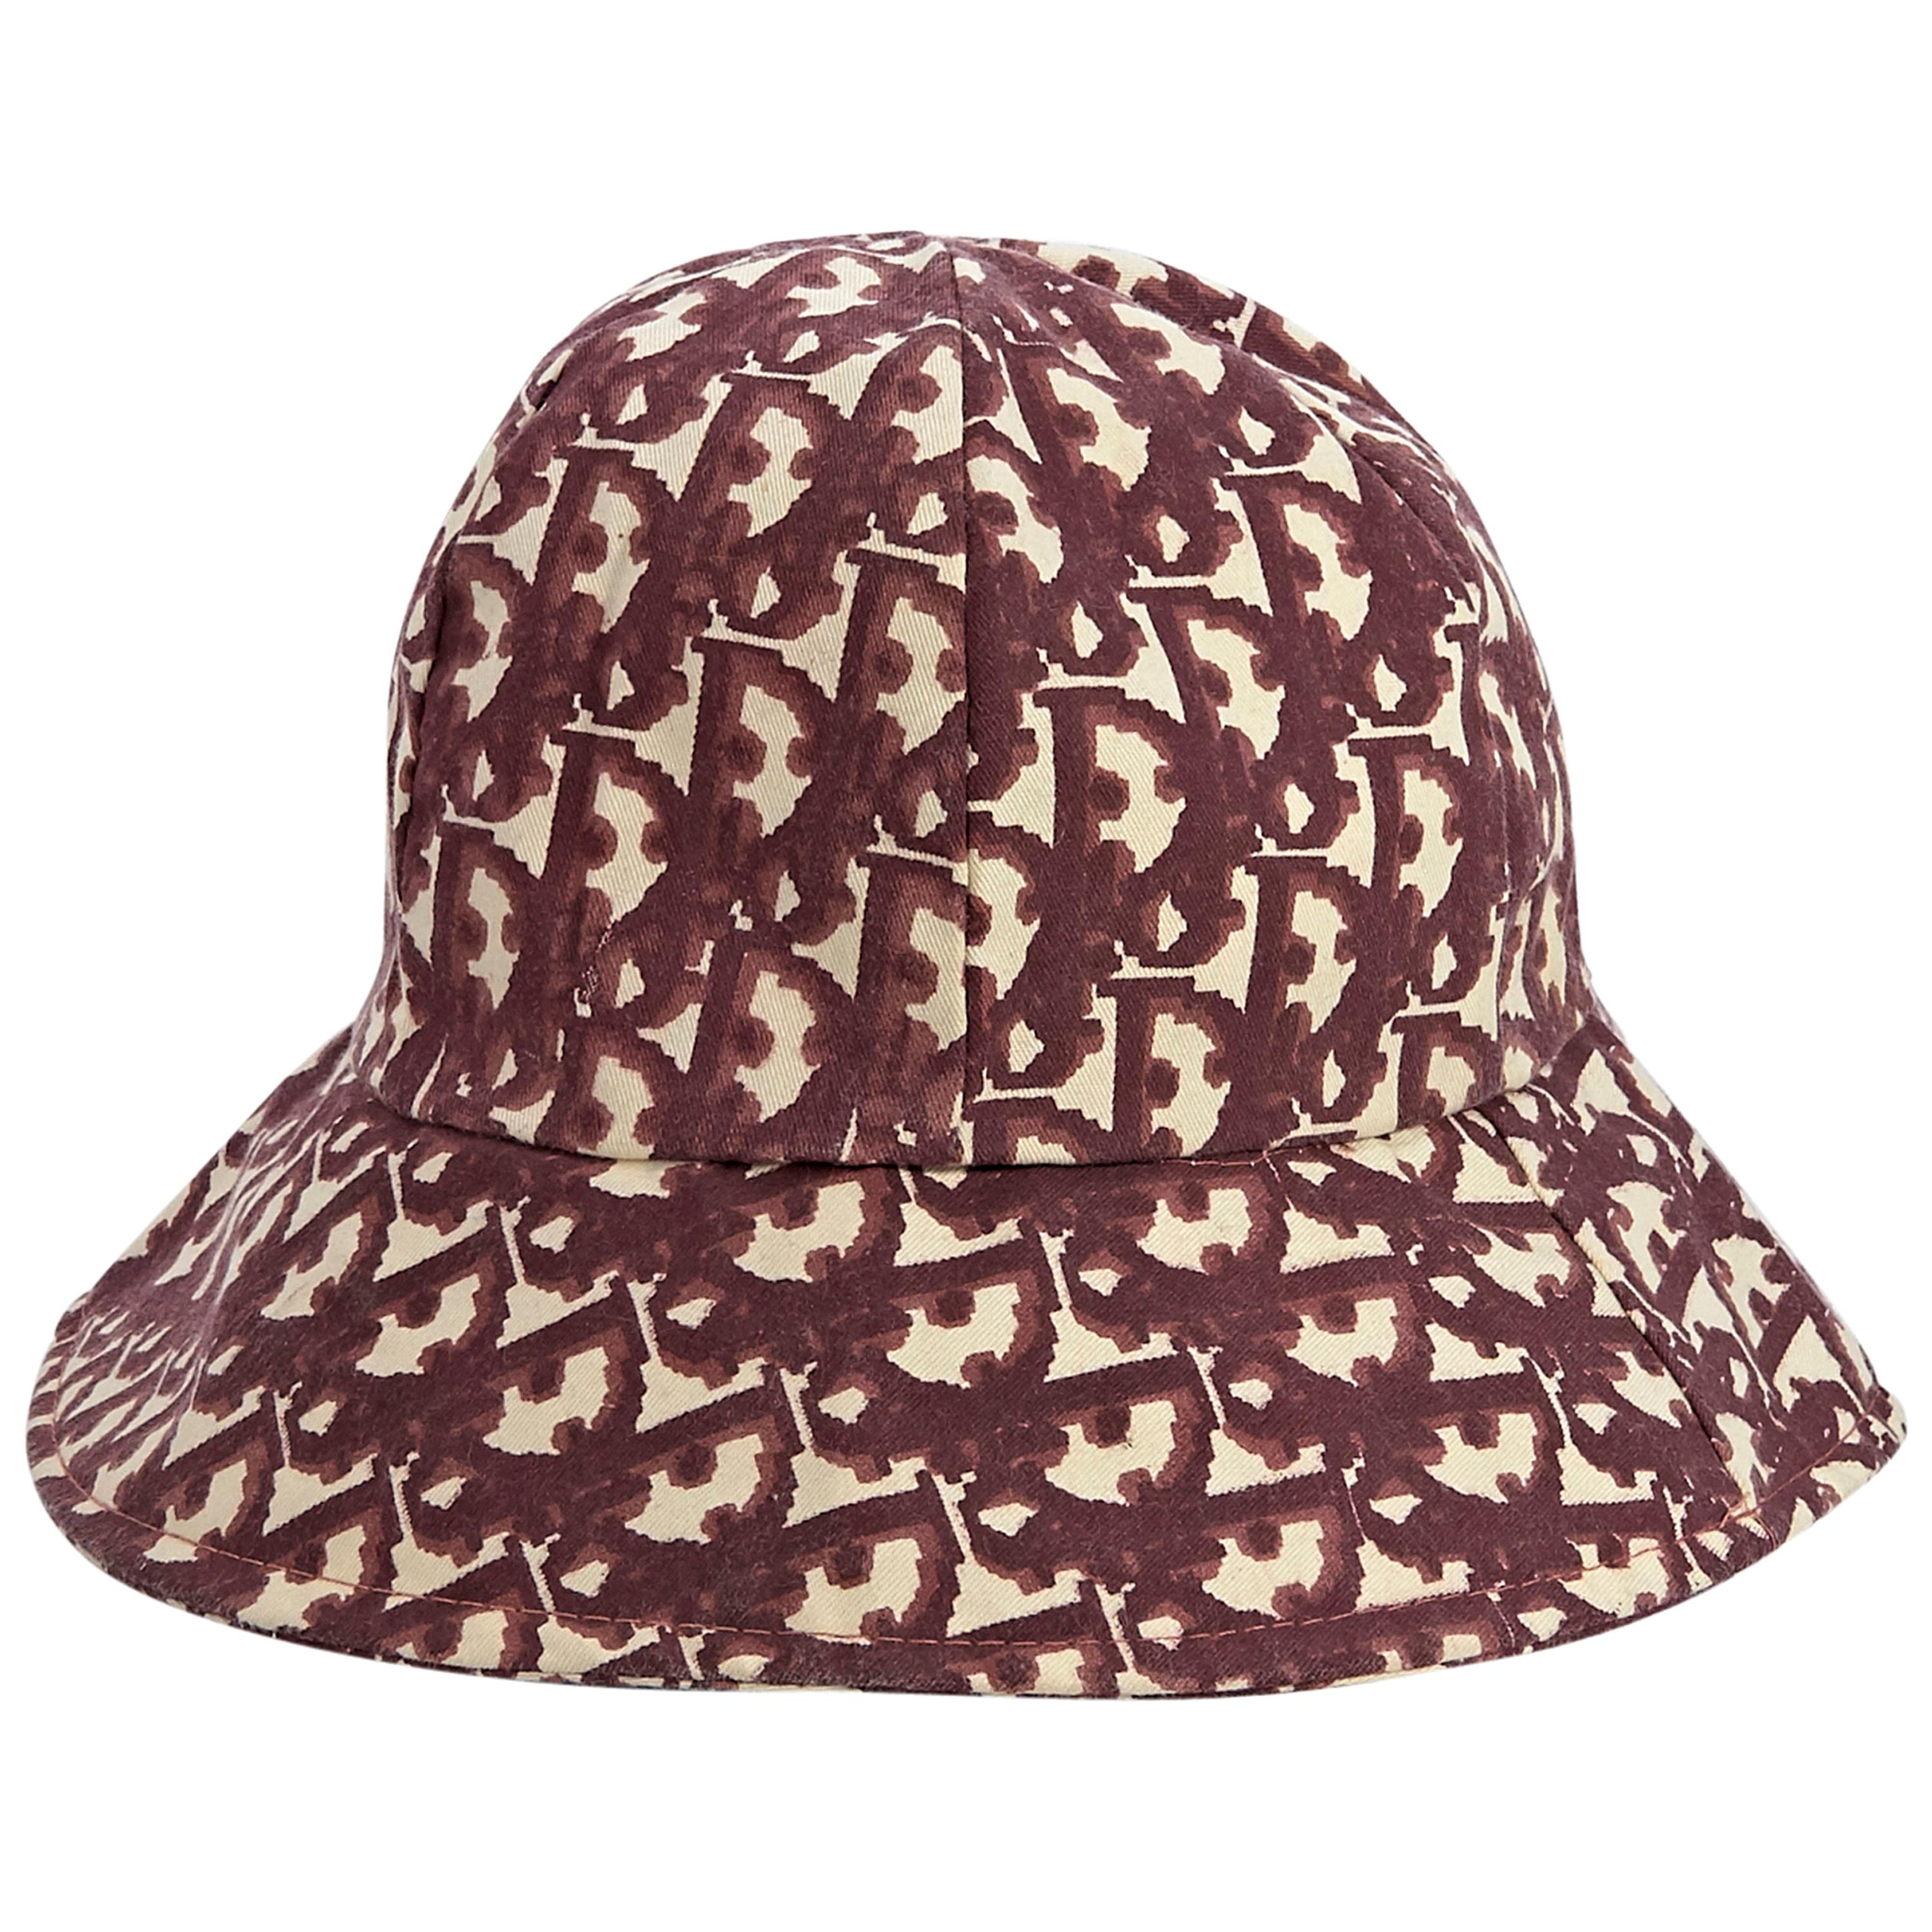 7516dbcfb91a3a Vintage and Designer Hats - 1,174 For Sale at 1stdibs